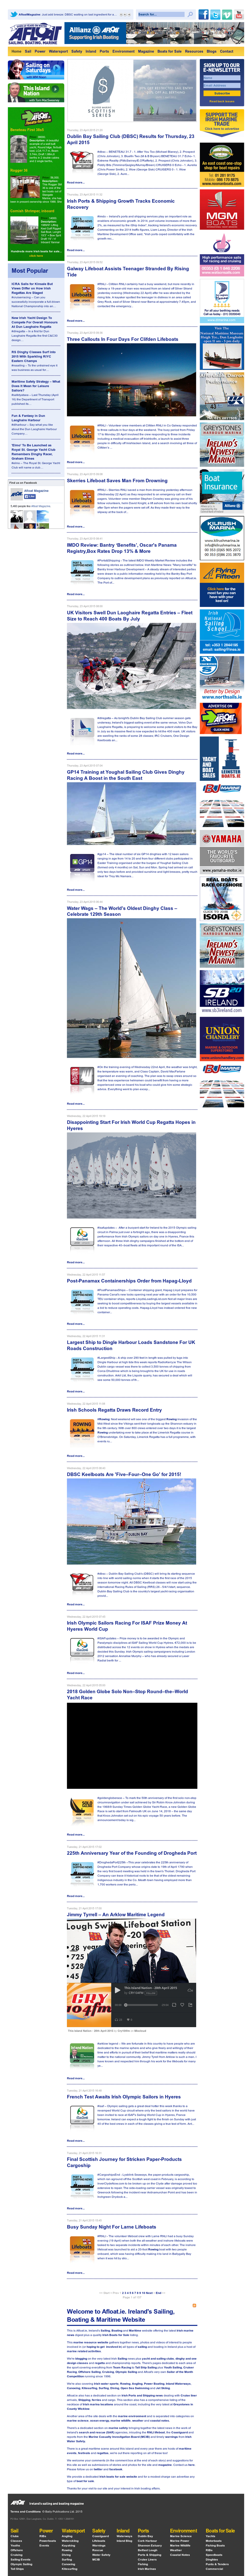 Afloat Magazine Competitors, Revenue and Employees - Owler Company